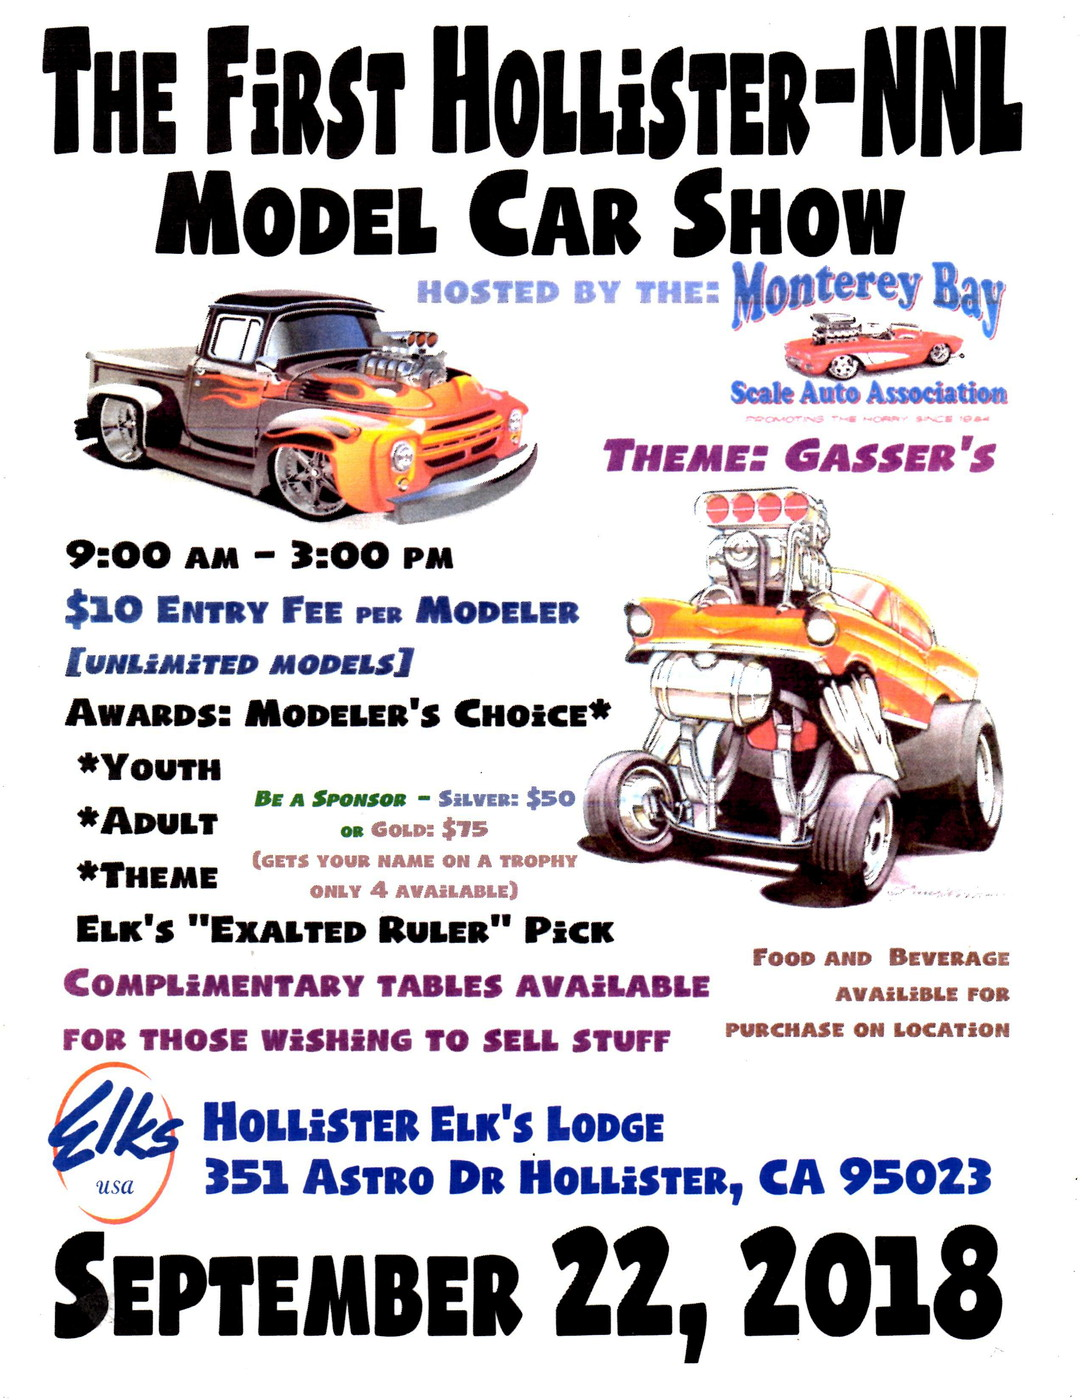 Hollister NNL In NorCal Contests And Shows Model Cars Magazine Forum - Hollister car show 2018